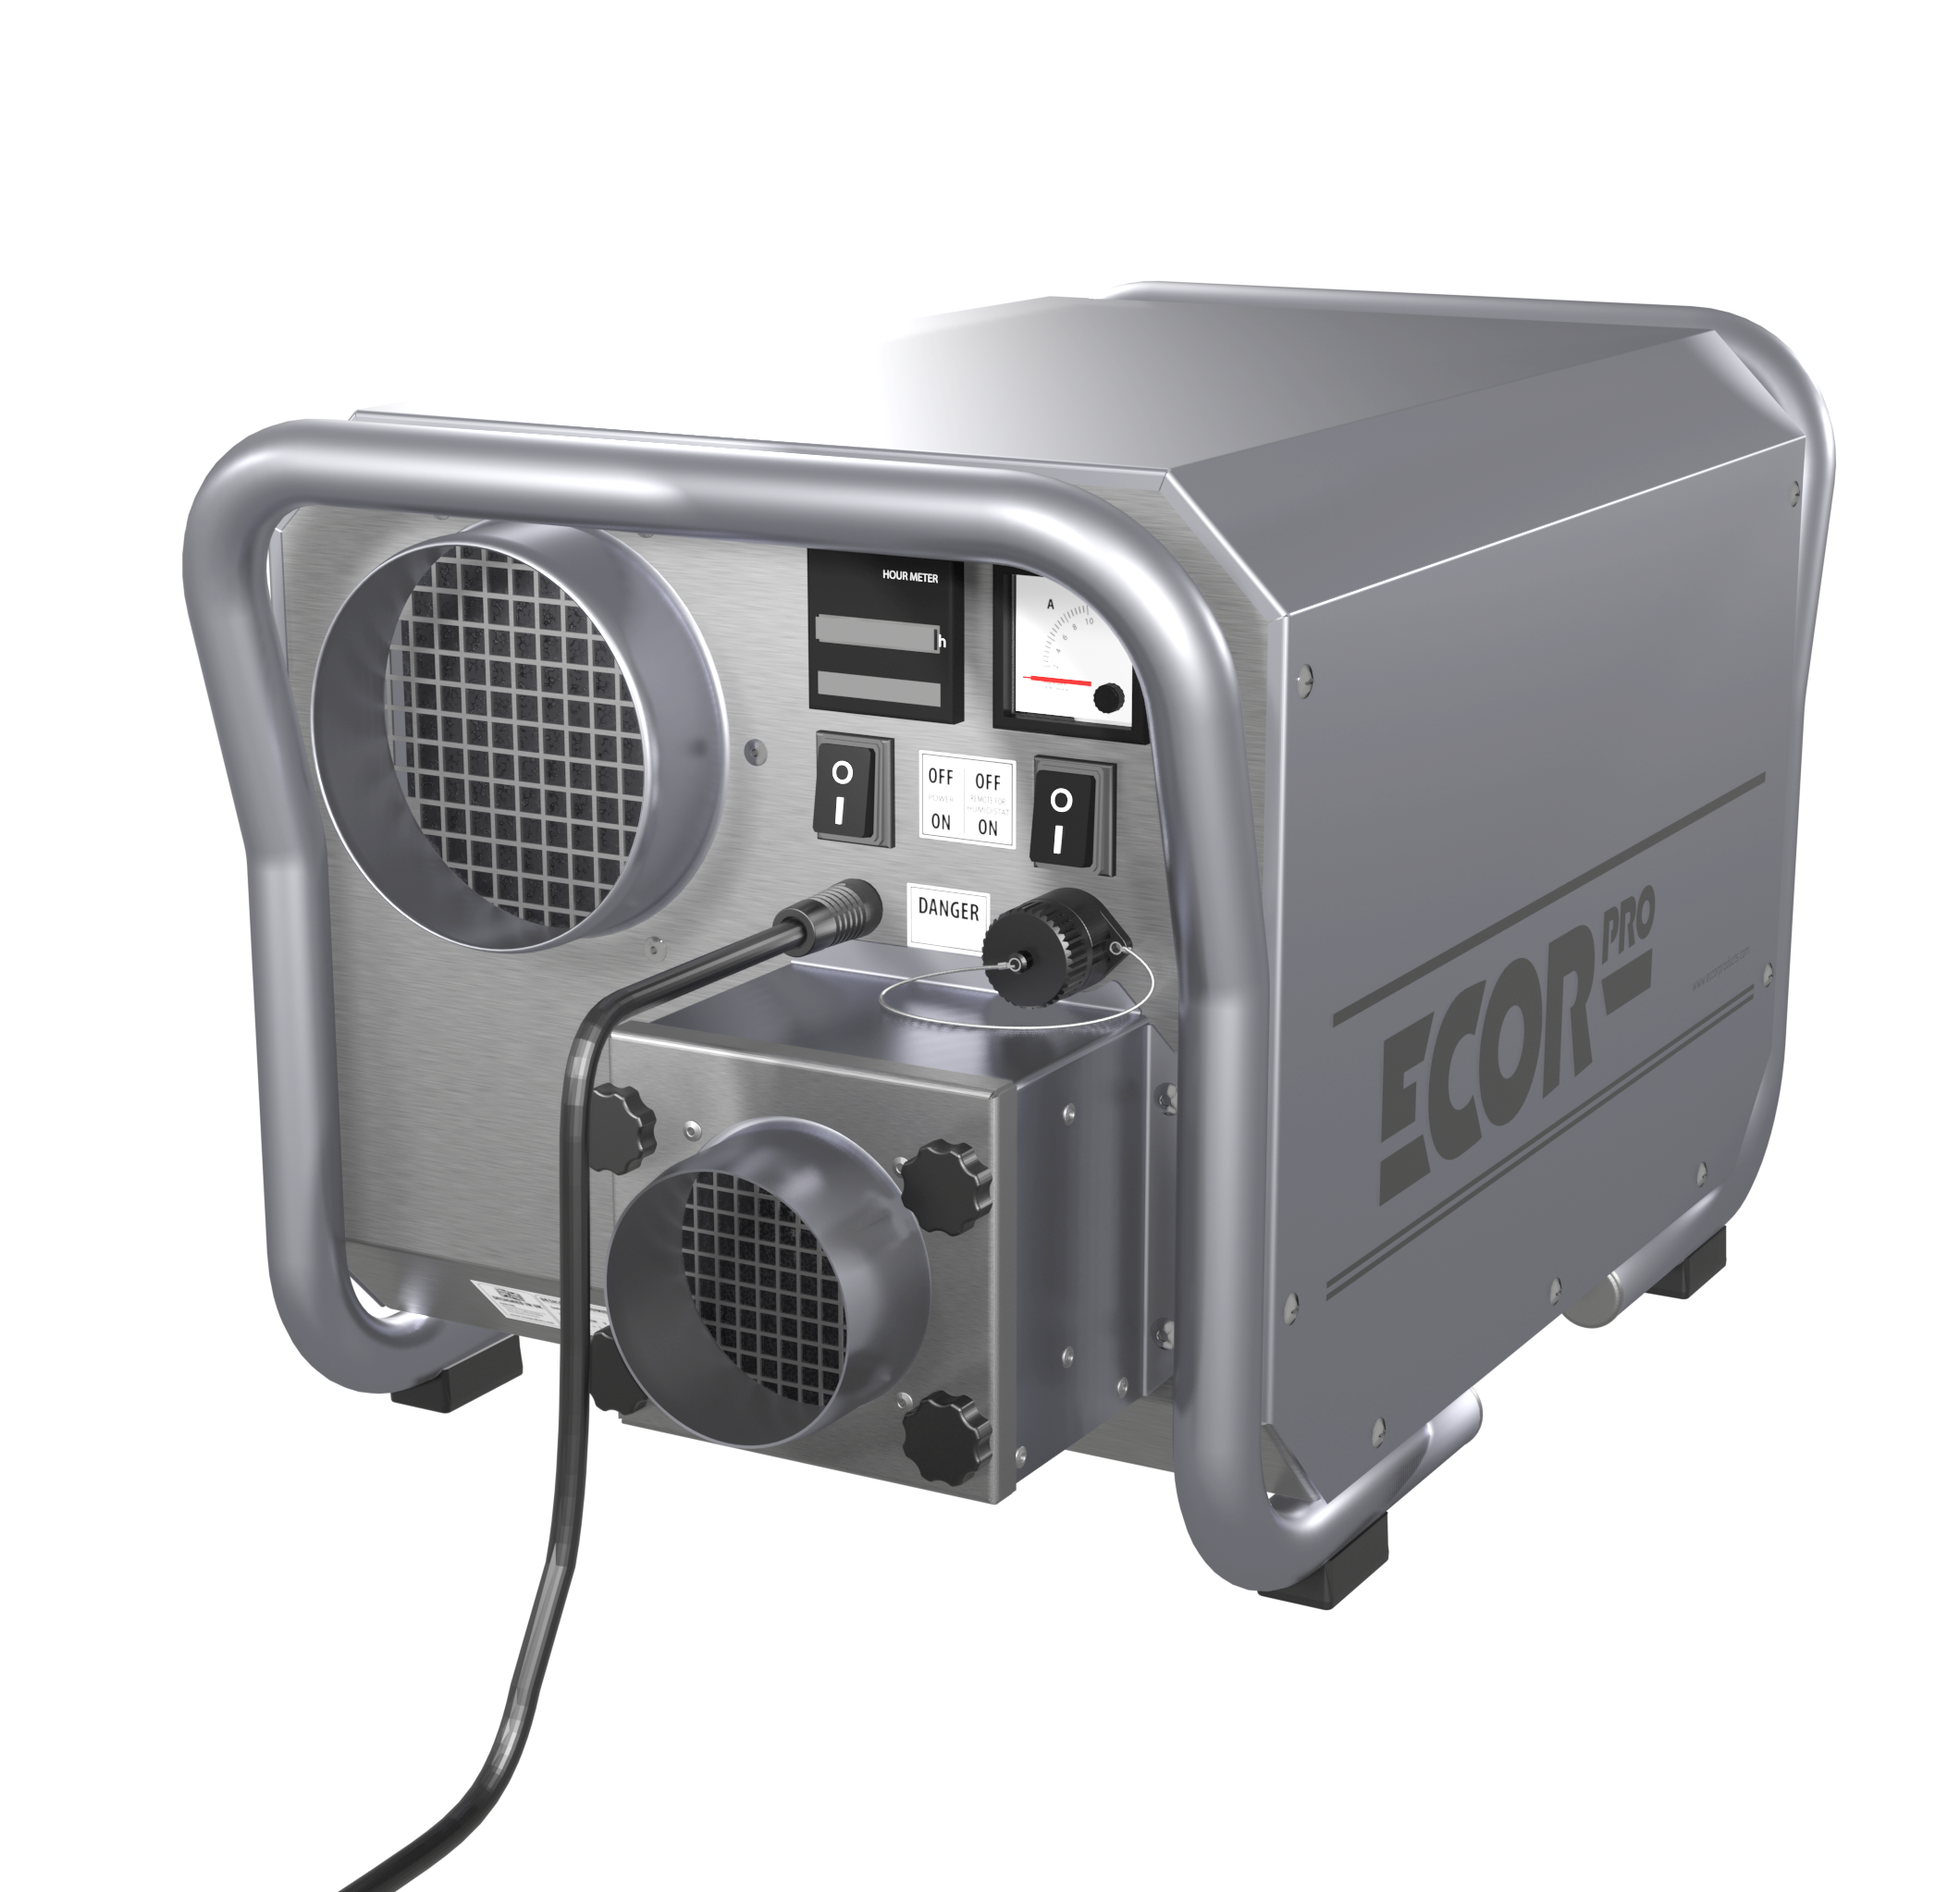 dh3500inox epd200pro front dehumidifiers by Ecor Pro